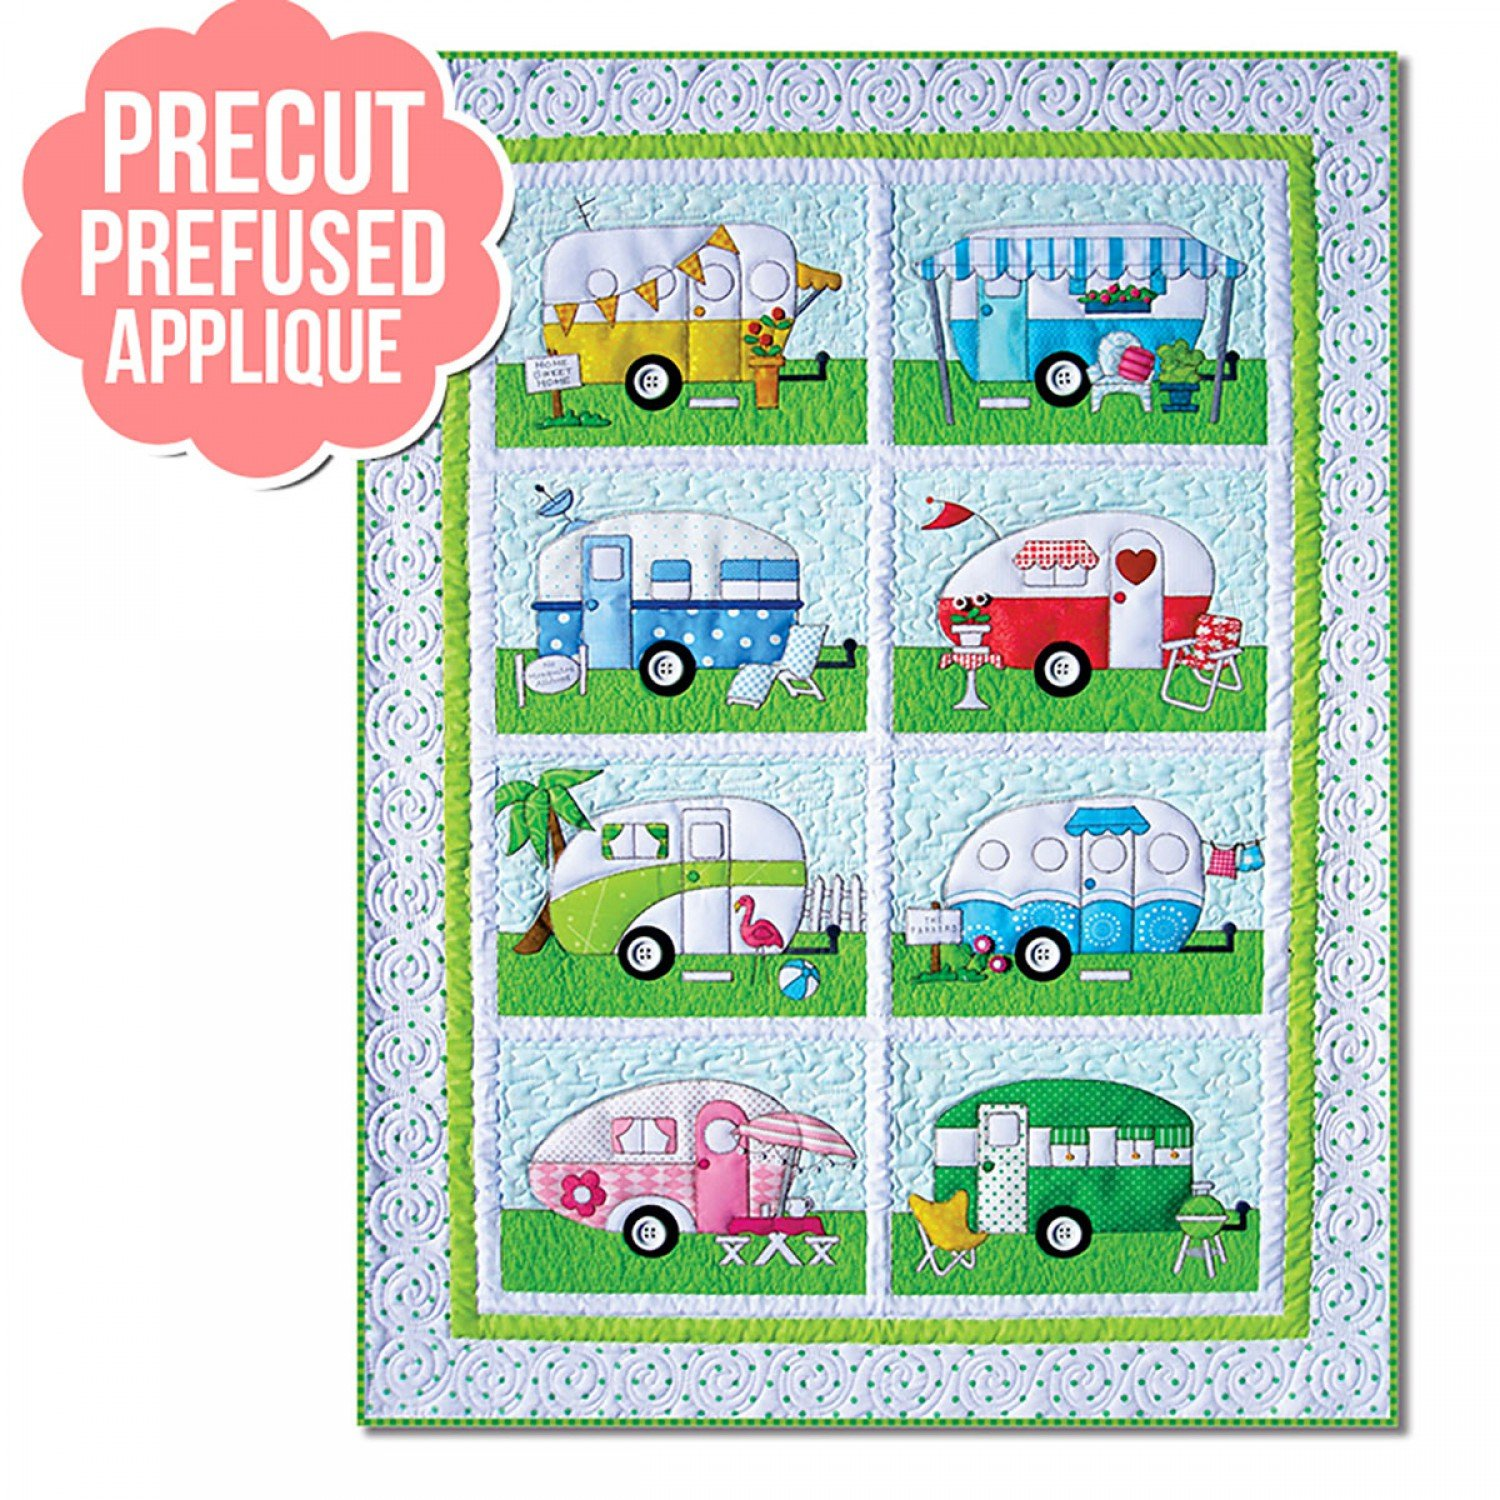 Campers Pre-cut and Pre-Fused Applique Kit